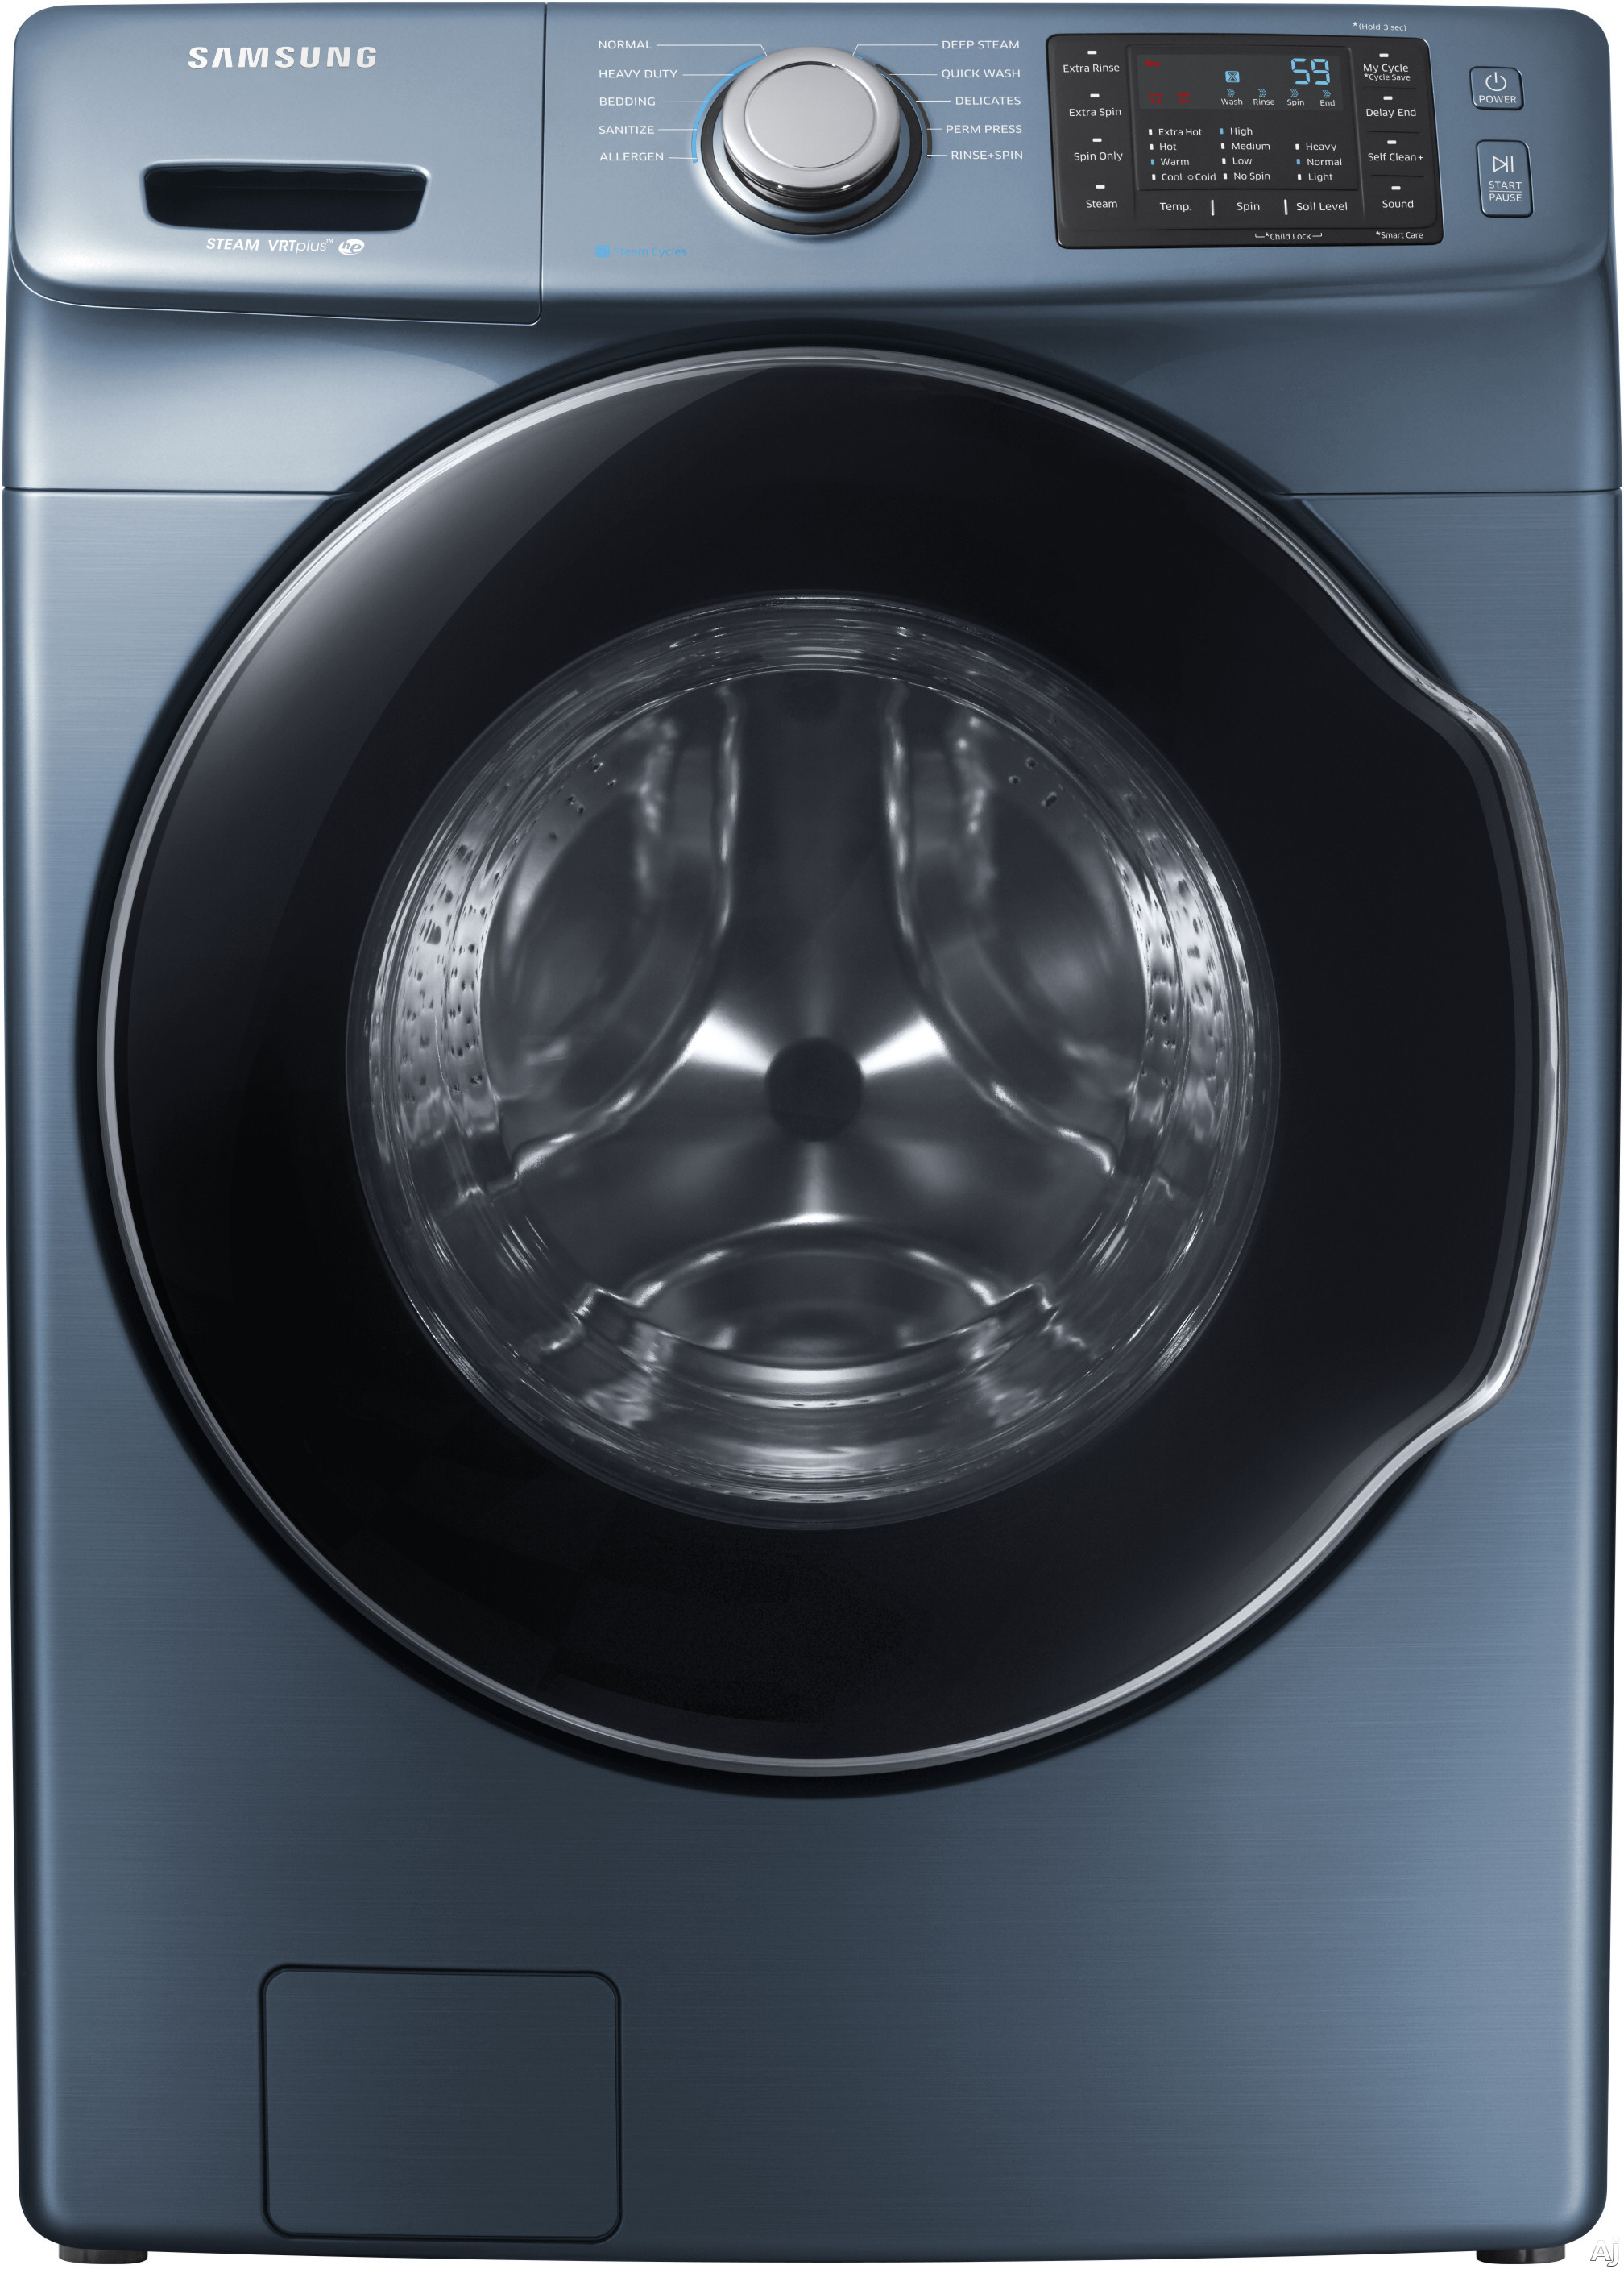 """WF45M5500AZ 27"""""""" Front-Load Washer With 4.5 cu. ft. Capacity DOE  Steam Wash  VRT Plus Technology  Steam Wash  Self Clean  Smart Care  Child Lock  Delay End  in"""" 744715"""